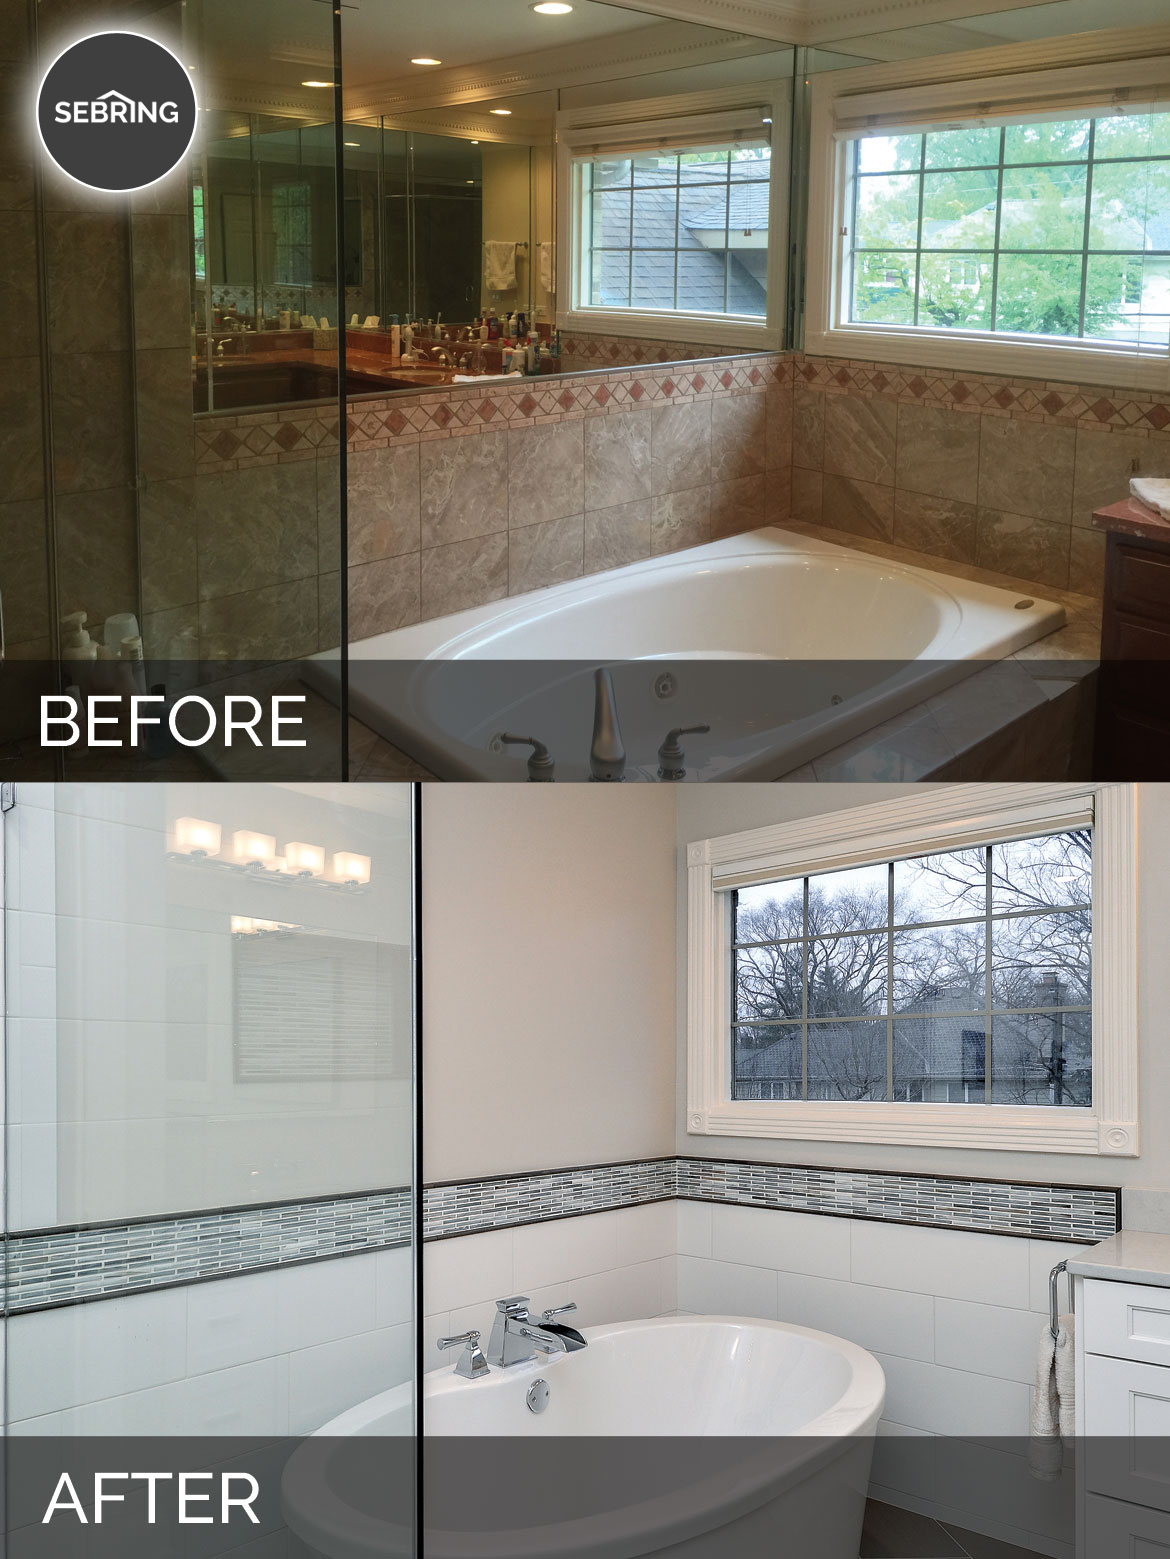 View larger image master bathroom remodel hinsdale before after sebring design build